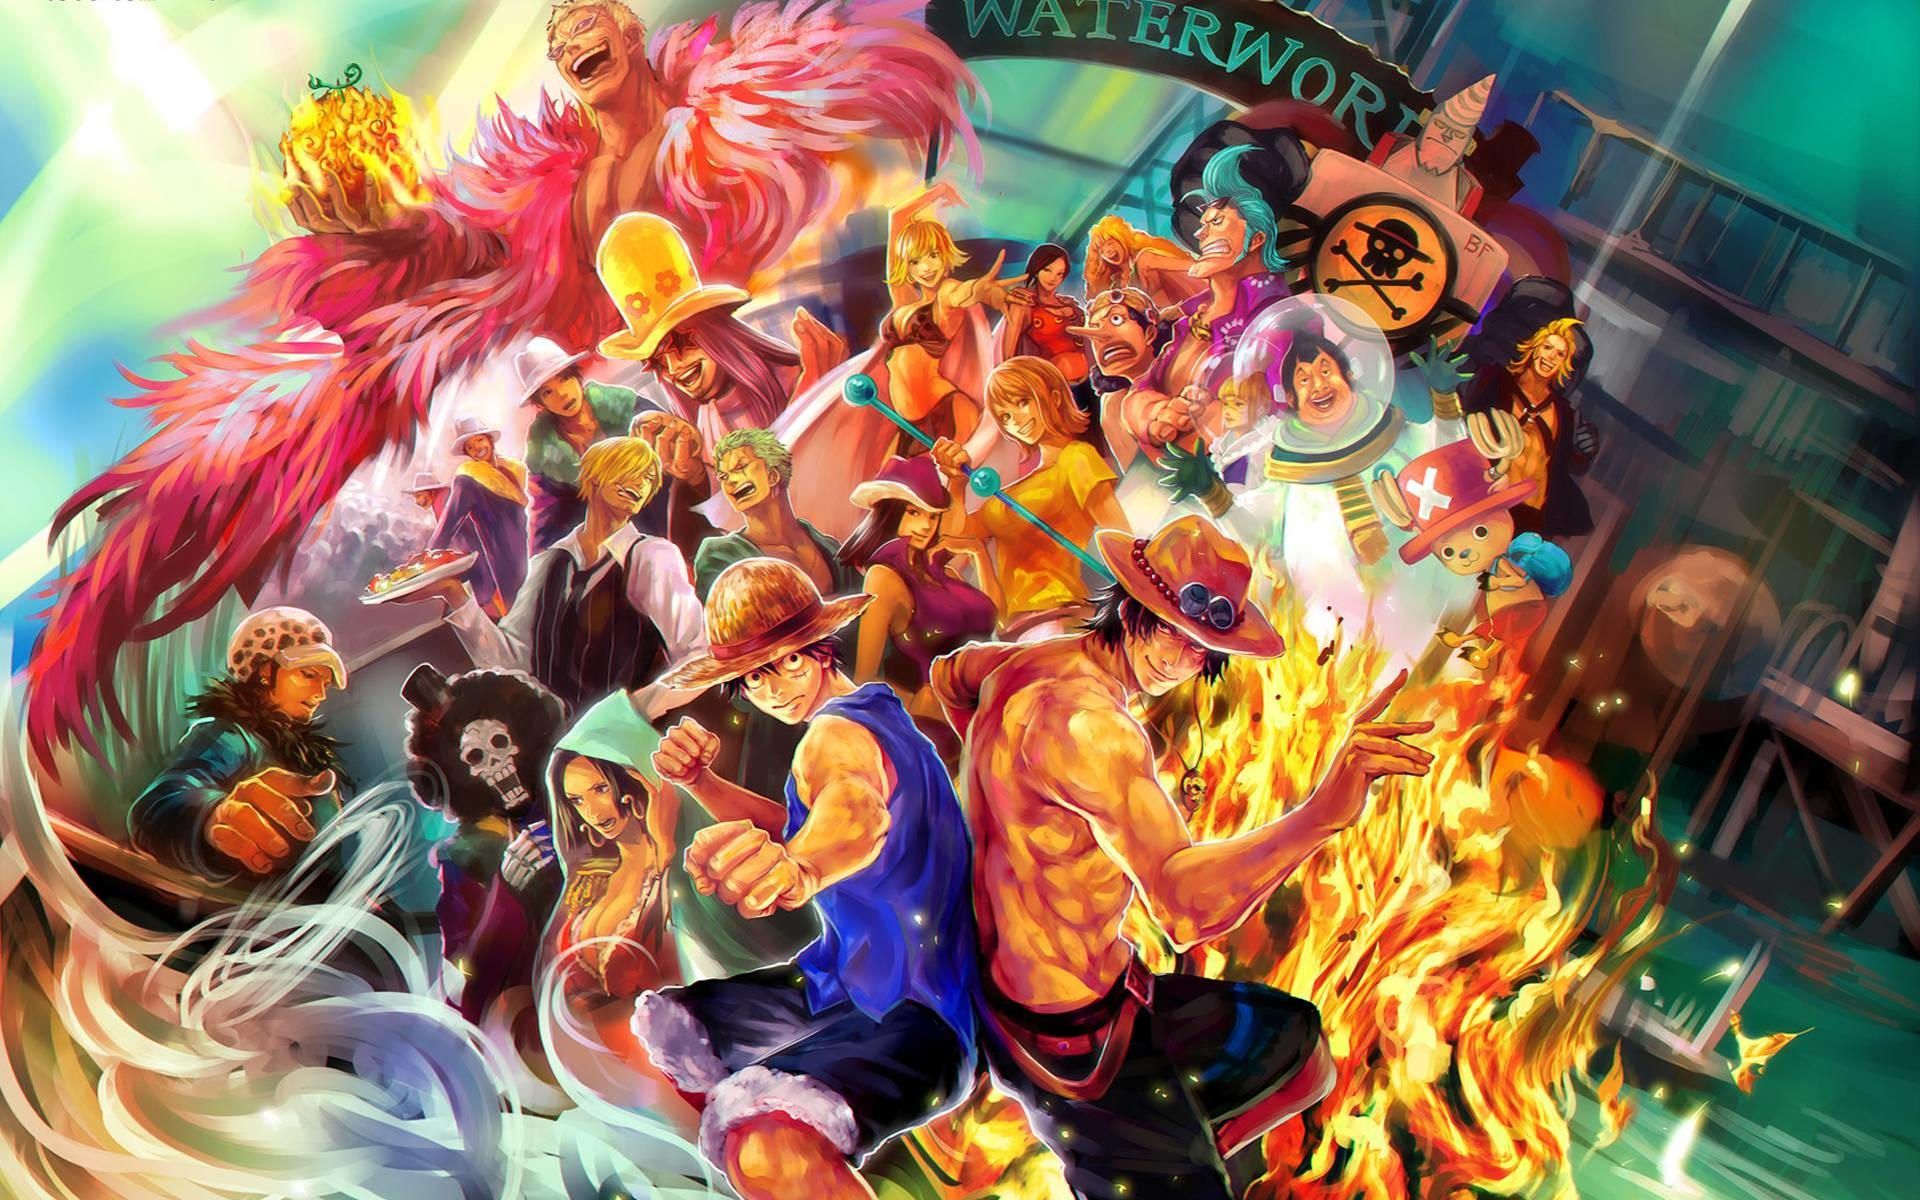 1920x1200 One Piece Images Wallpapers (36 Wallpapers)